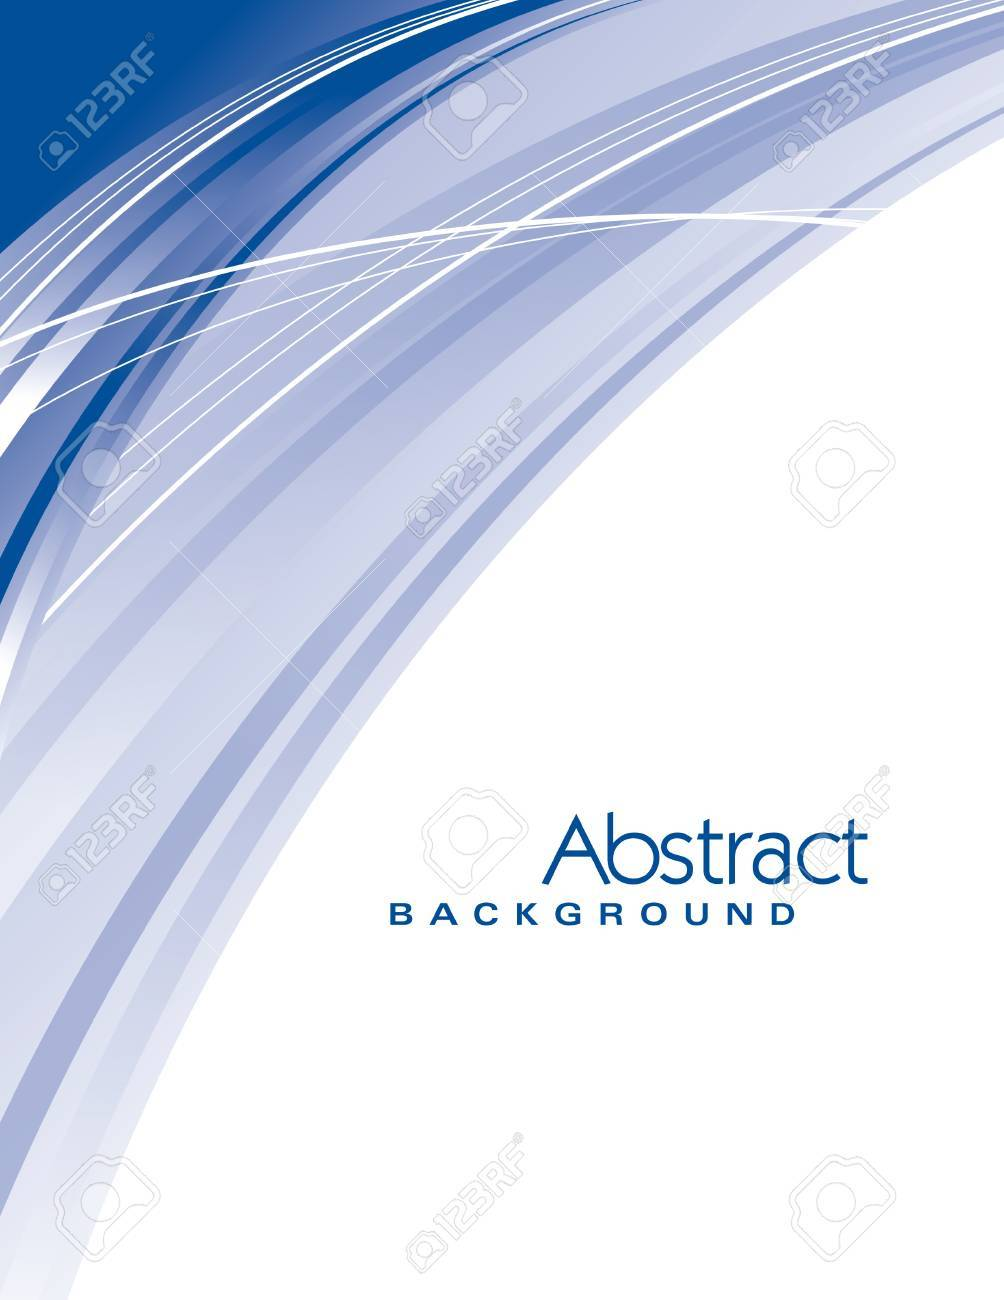 Abstract Background Stock Vector - 14871669